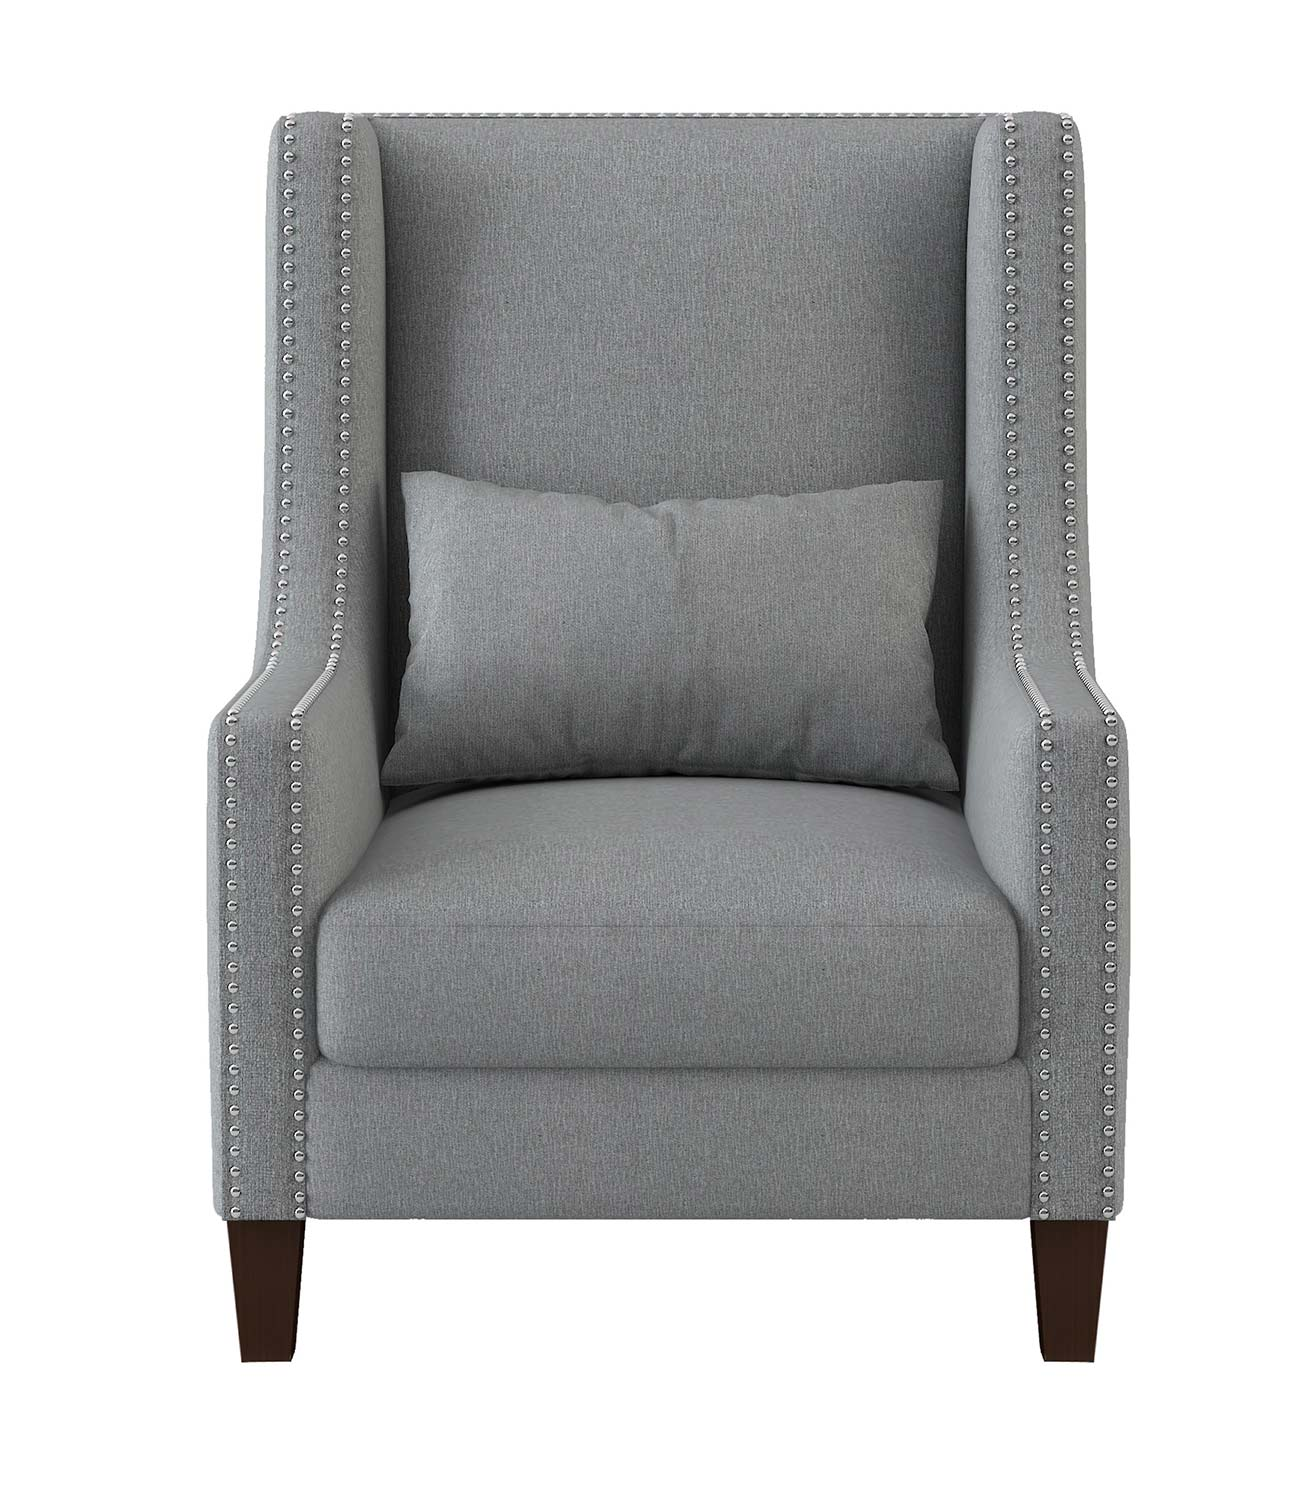 Homelegance Keller Accent Chair - Light gray